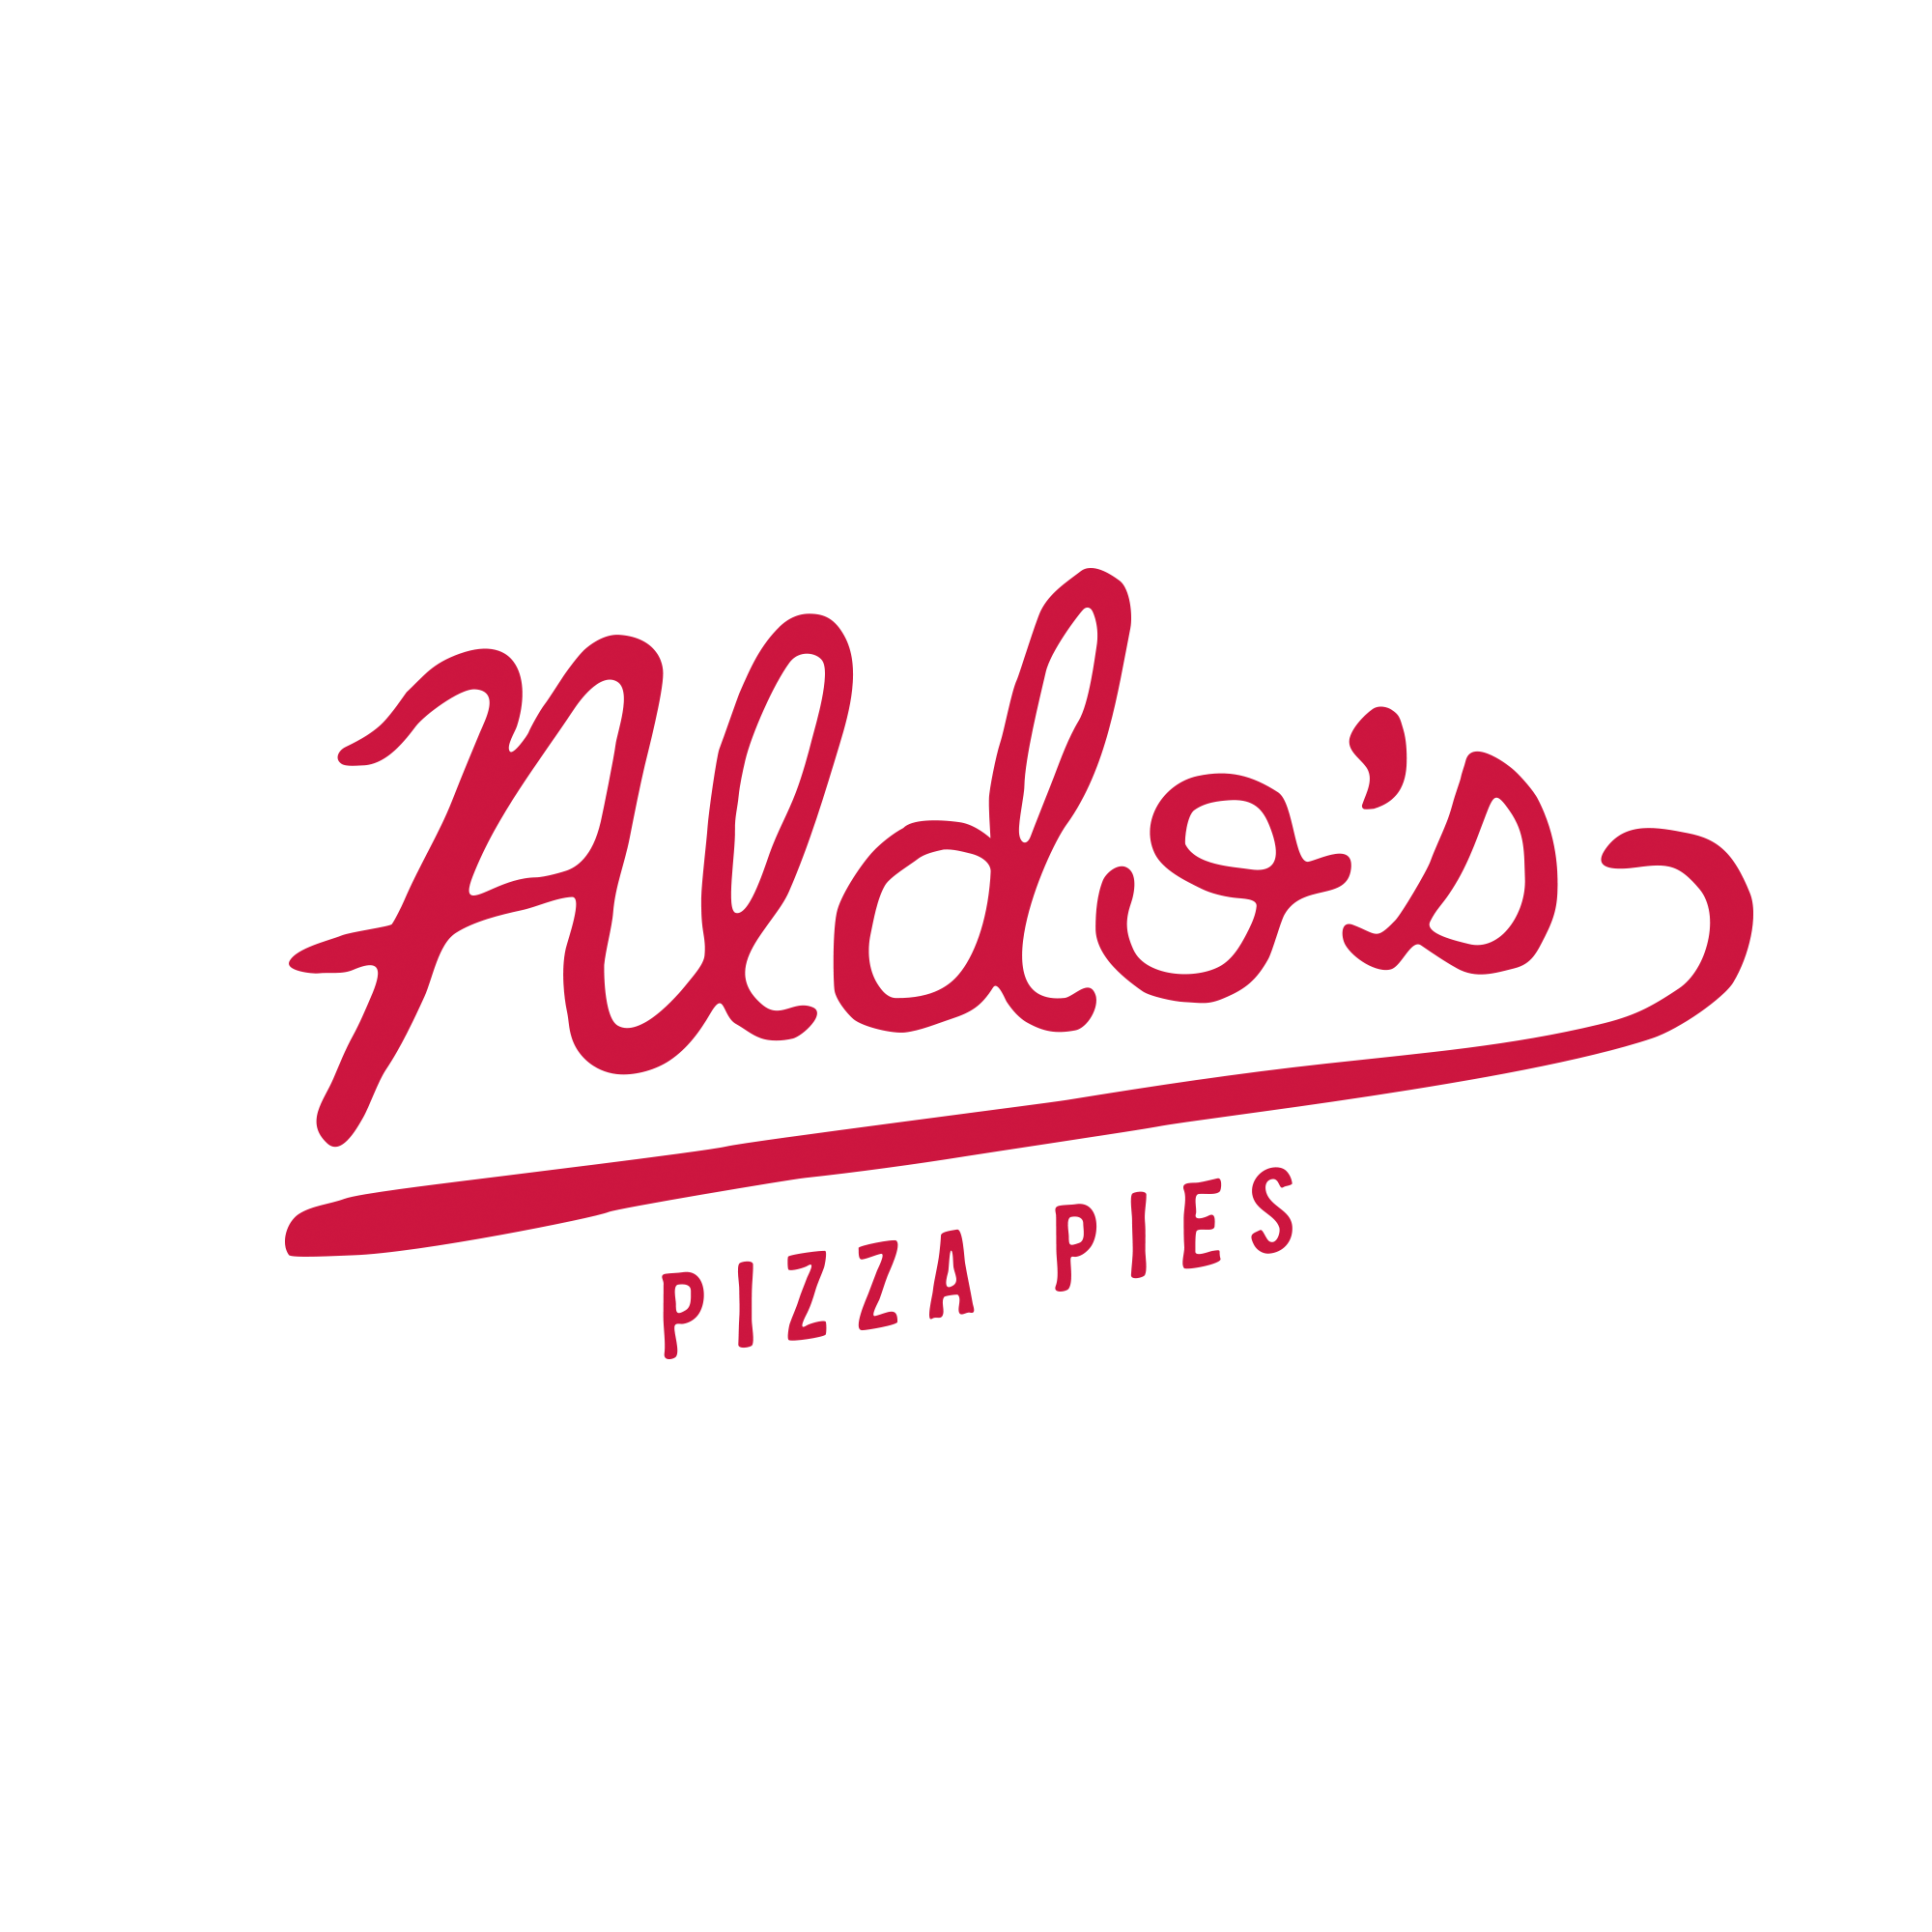 Aldos-Logo-2K-RGB-Red-Transparent.png